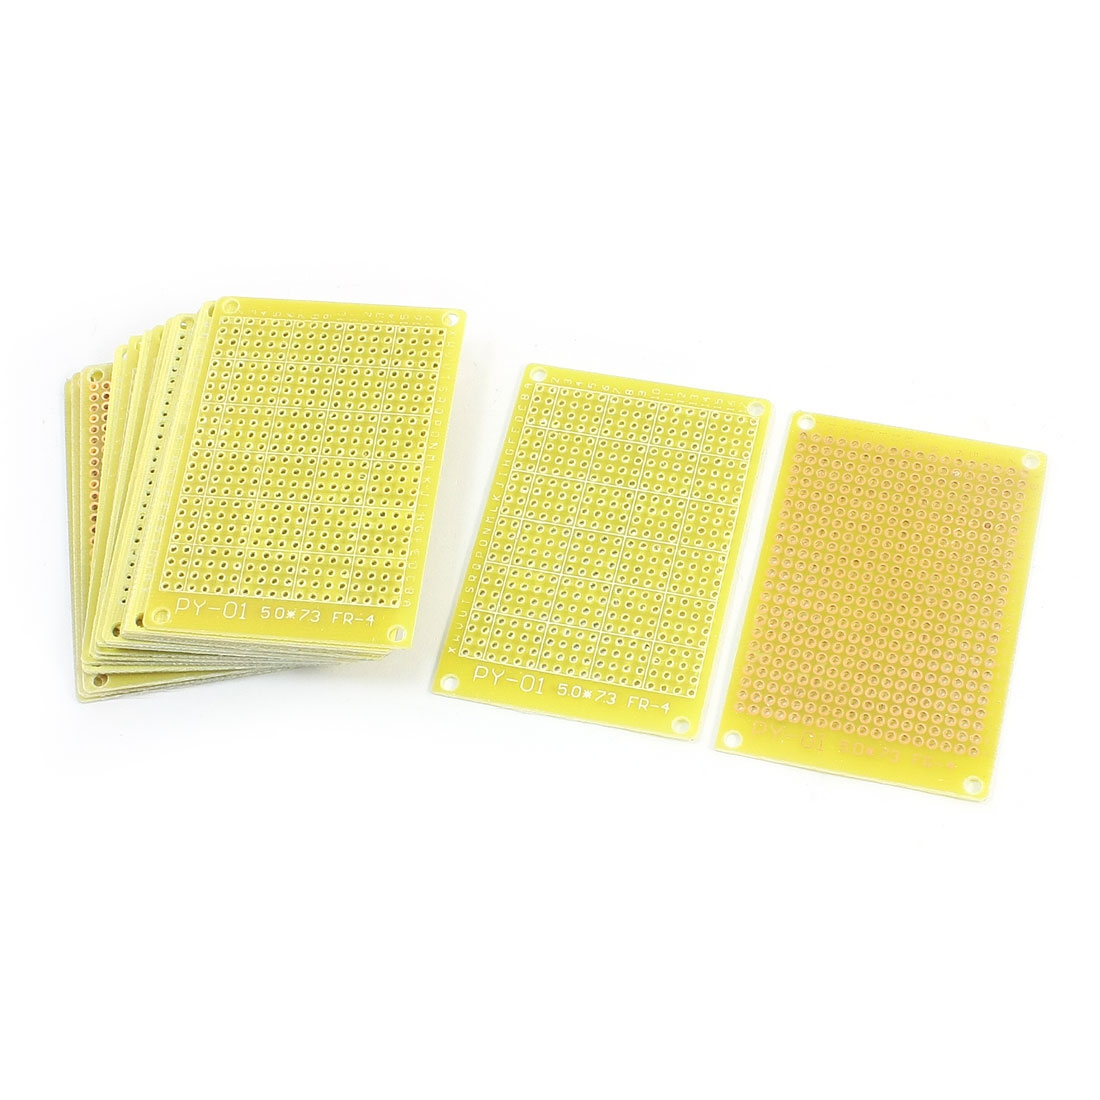 15Pcs Universal Single Side Prototype Matrix Copper Plated Glass Fiber PCB Board 7cm x 5cm